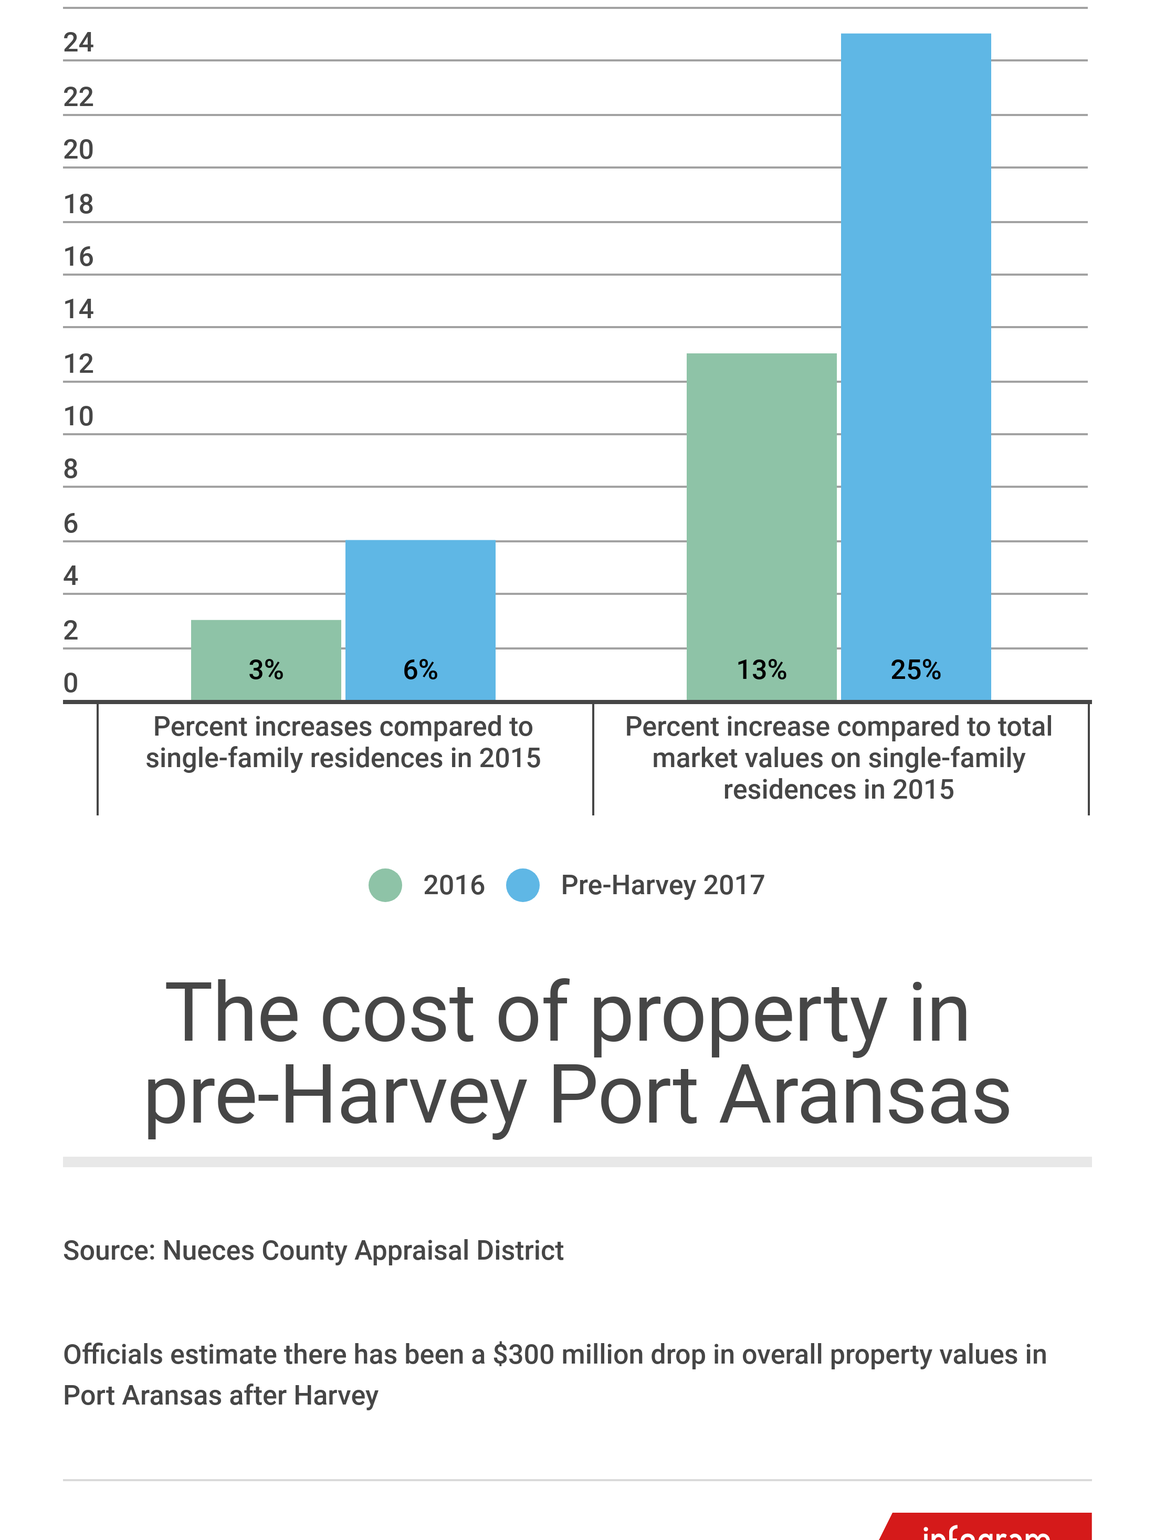 Port Aransas' property taxes for single-family residences